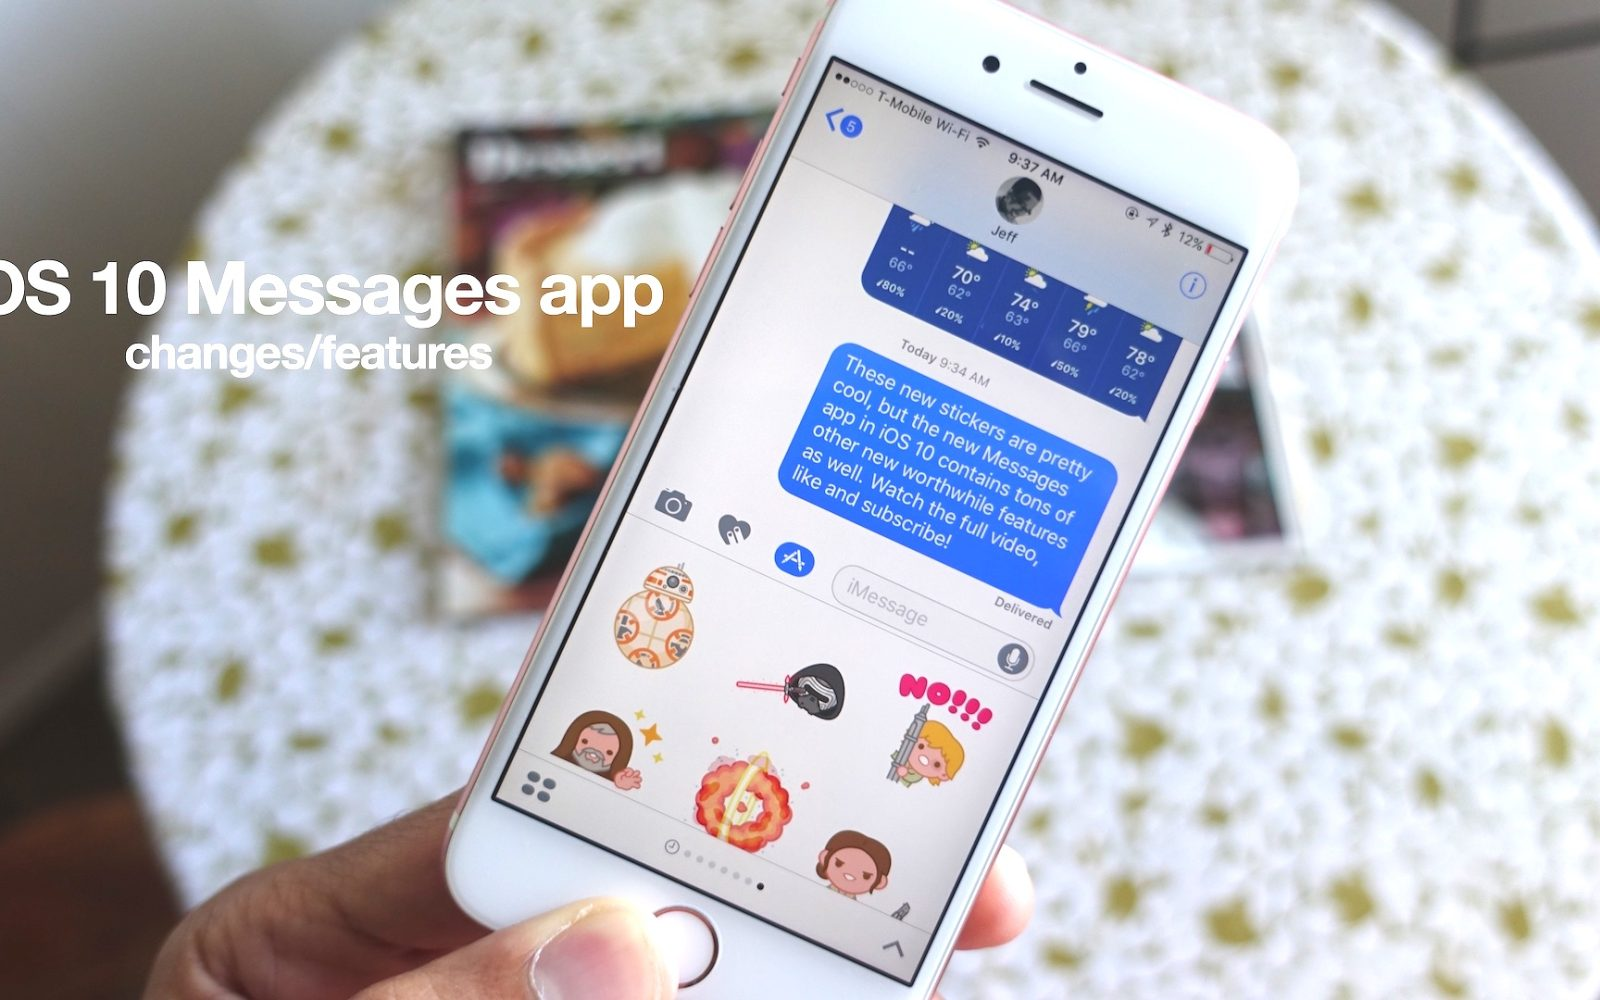 iOS 10: How to use stickers, iMessages apps, Digital Touch